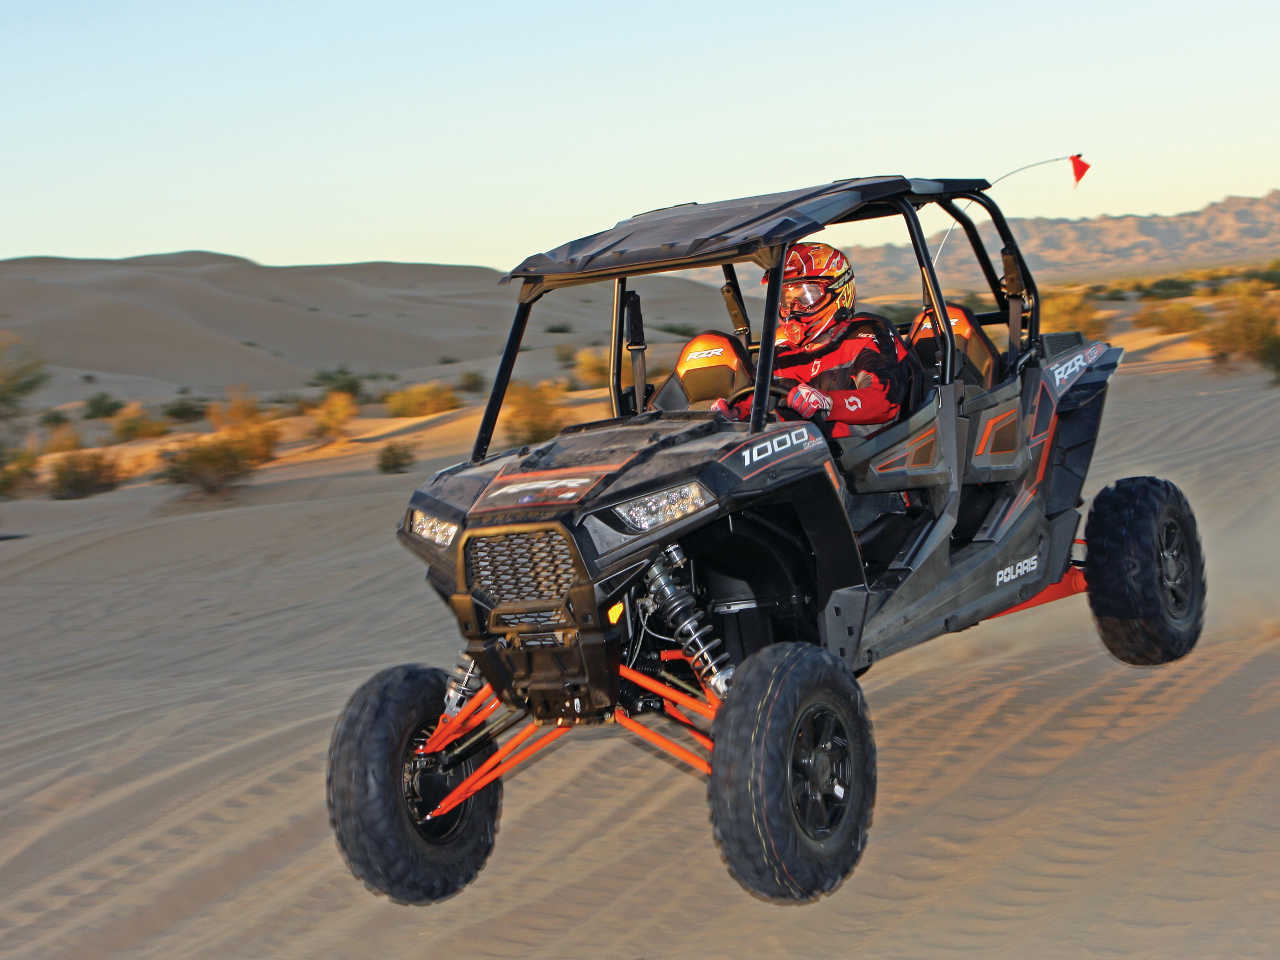 ride tested the 2014 polaris rzr xp 4 1000 eps atv illustrated. Black Bedroom Furniture Sets. Home Design Ideas